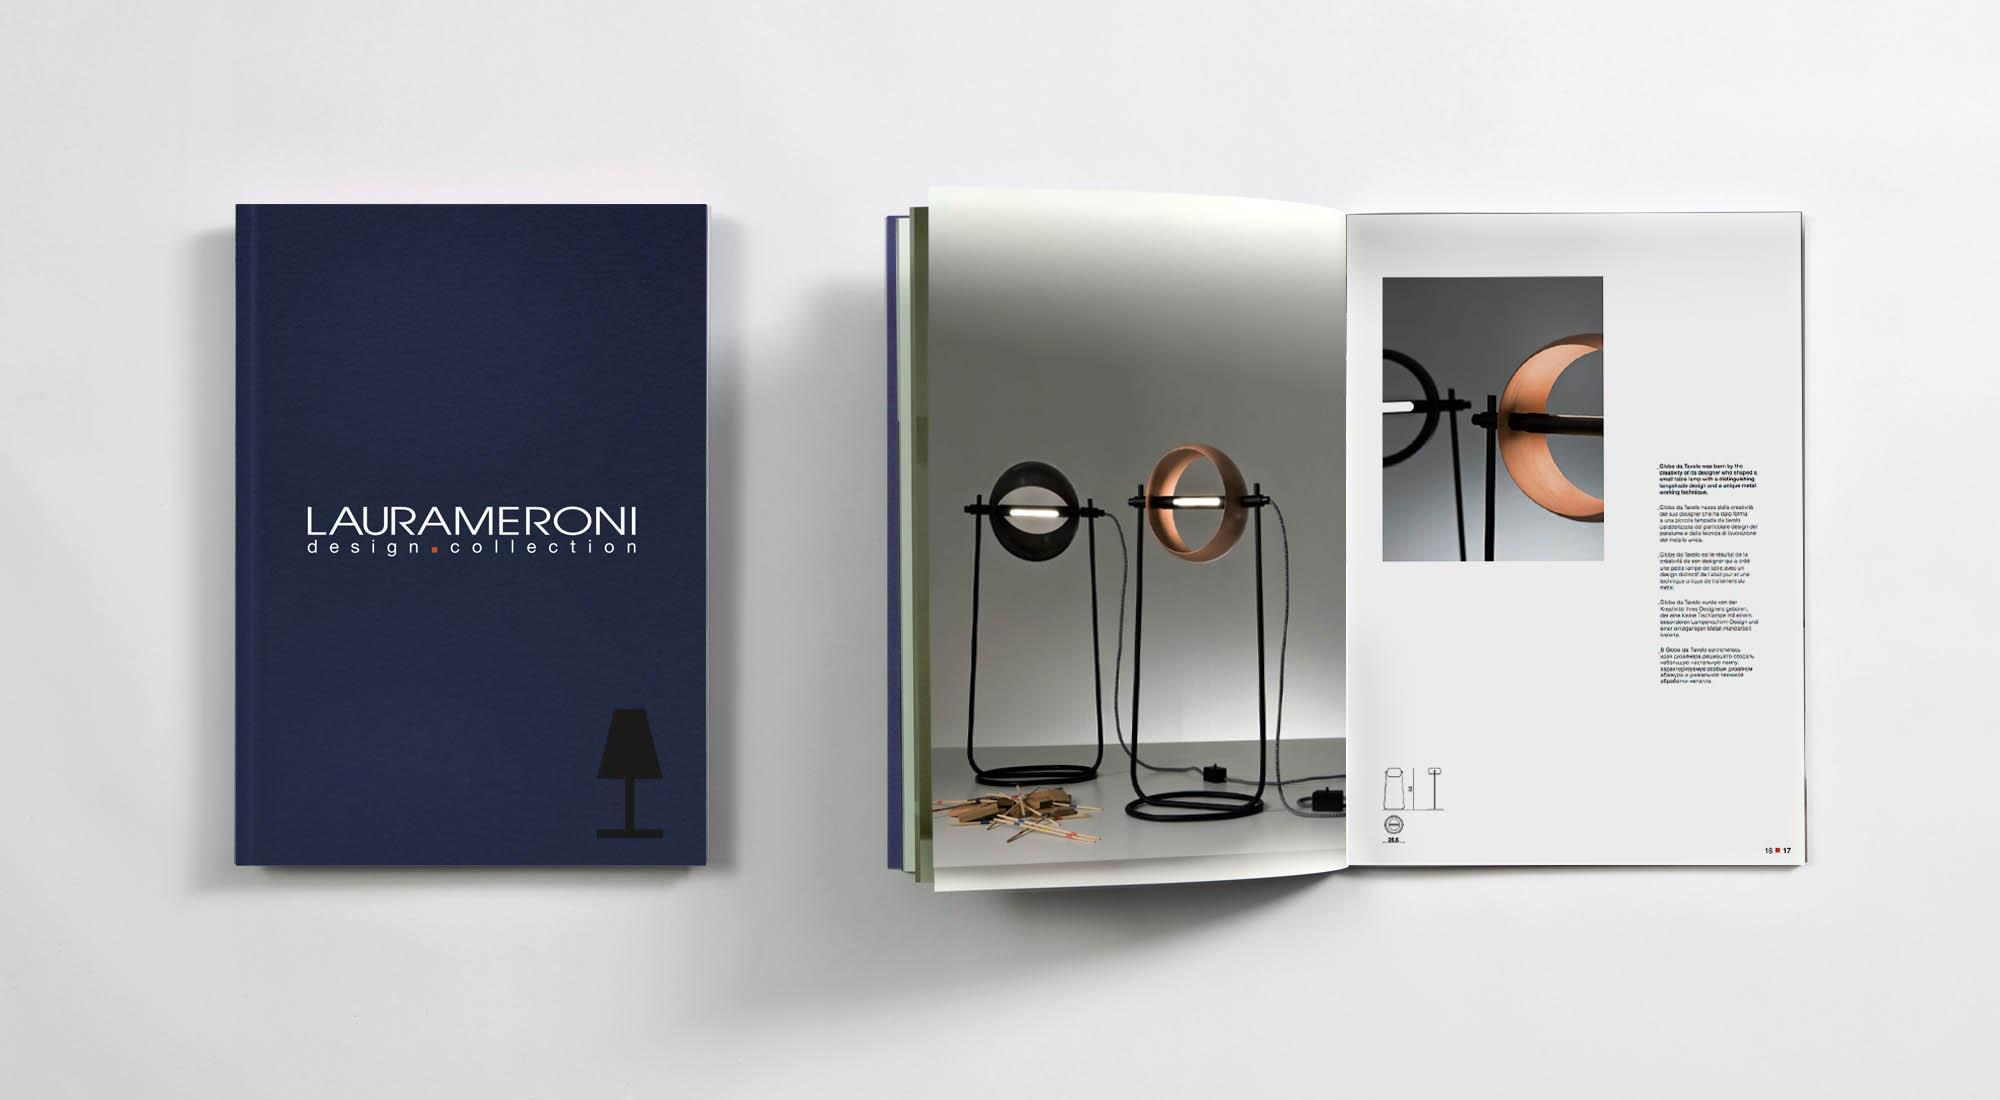 laurameroni free lighting catalogue download for luxury interior decor